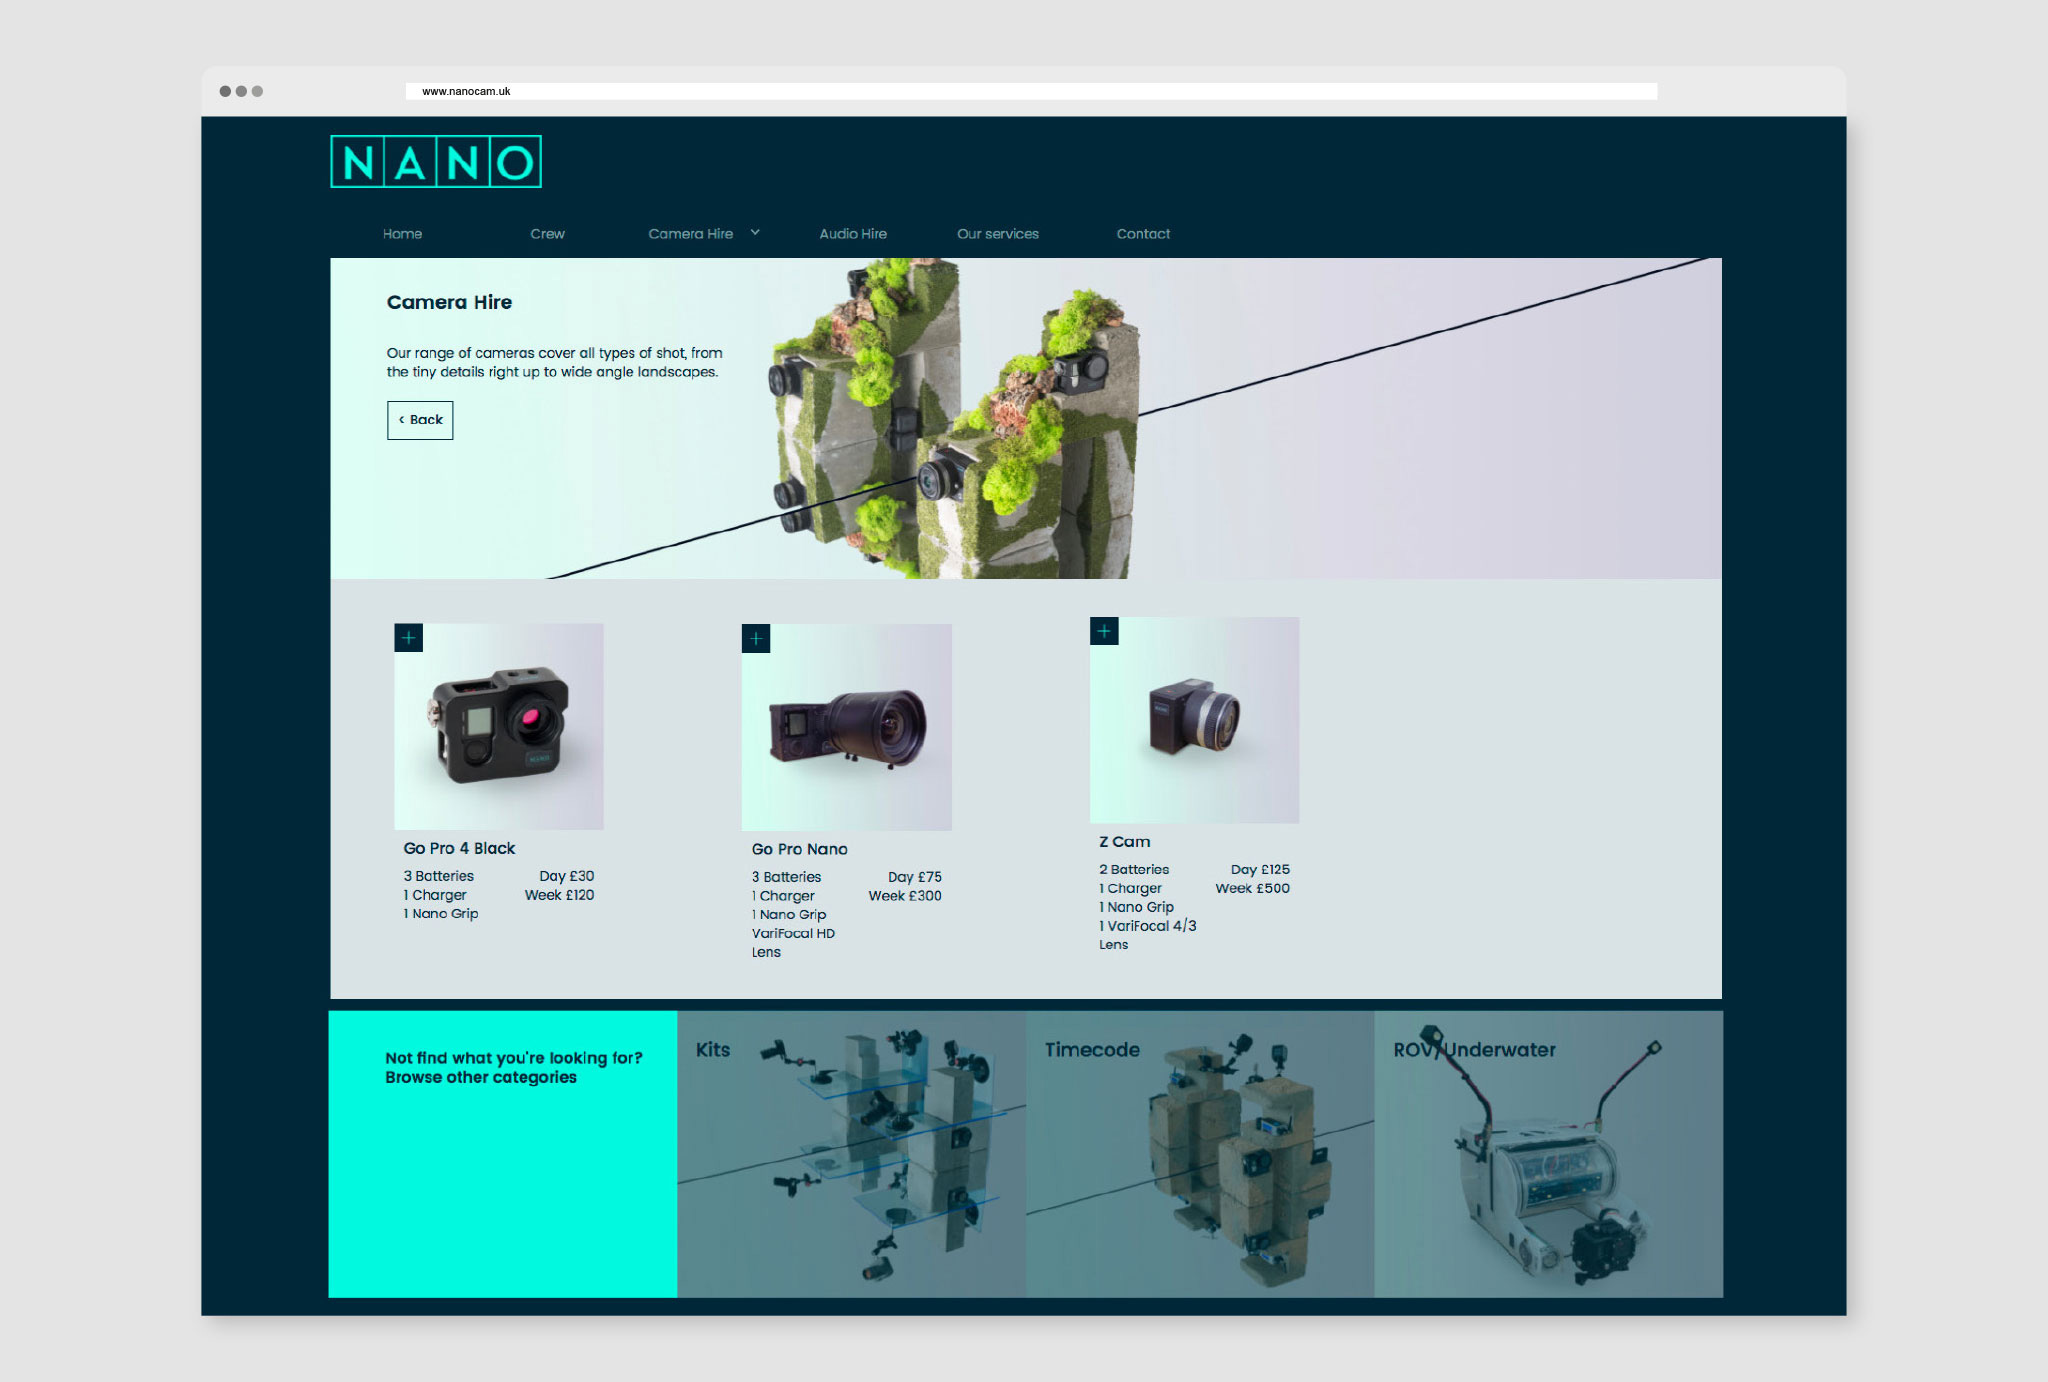 website design for product page for mini cameras